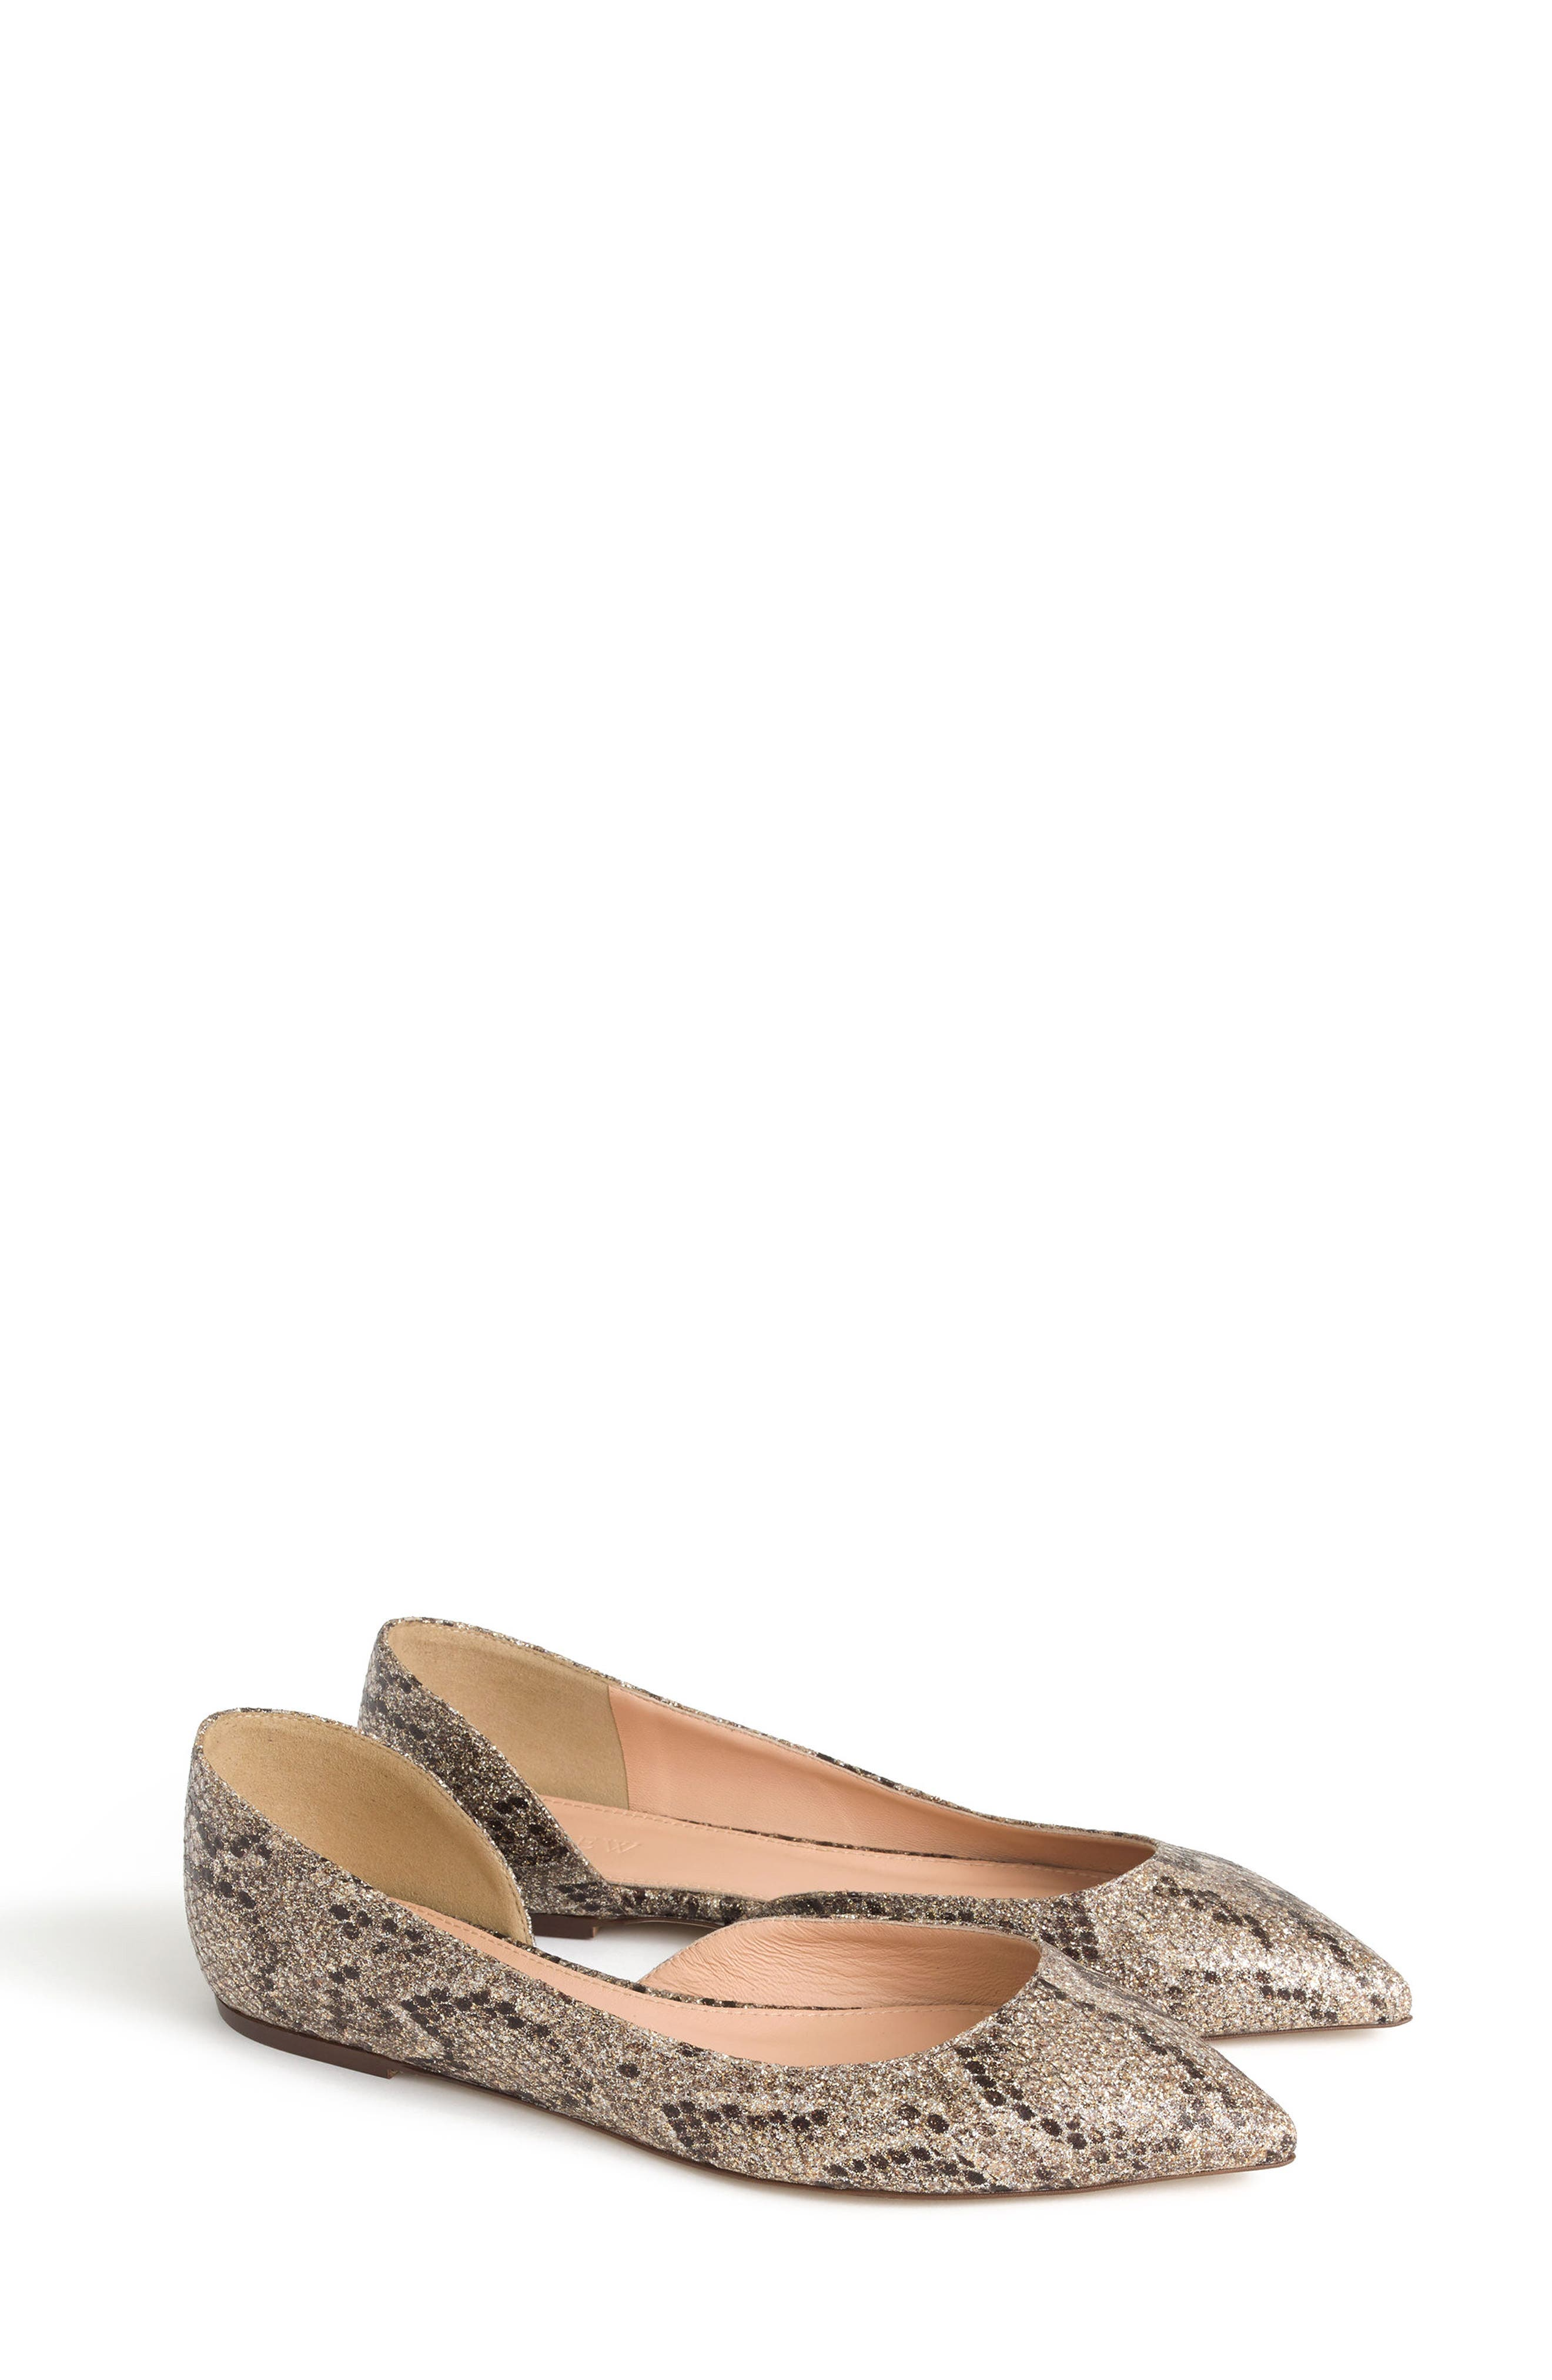 Sadie Glitter Flat,                         Main,                         color, 710